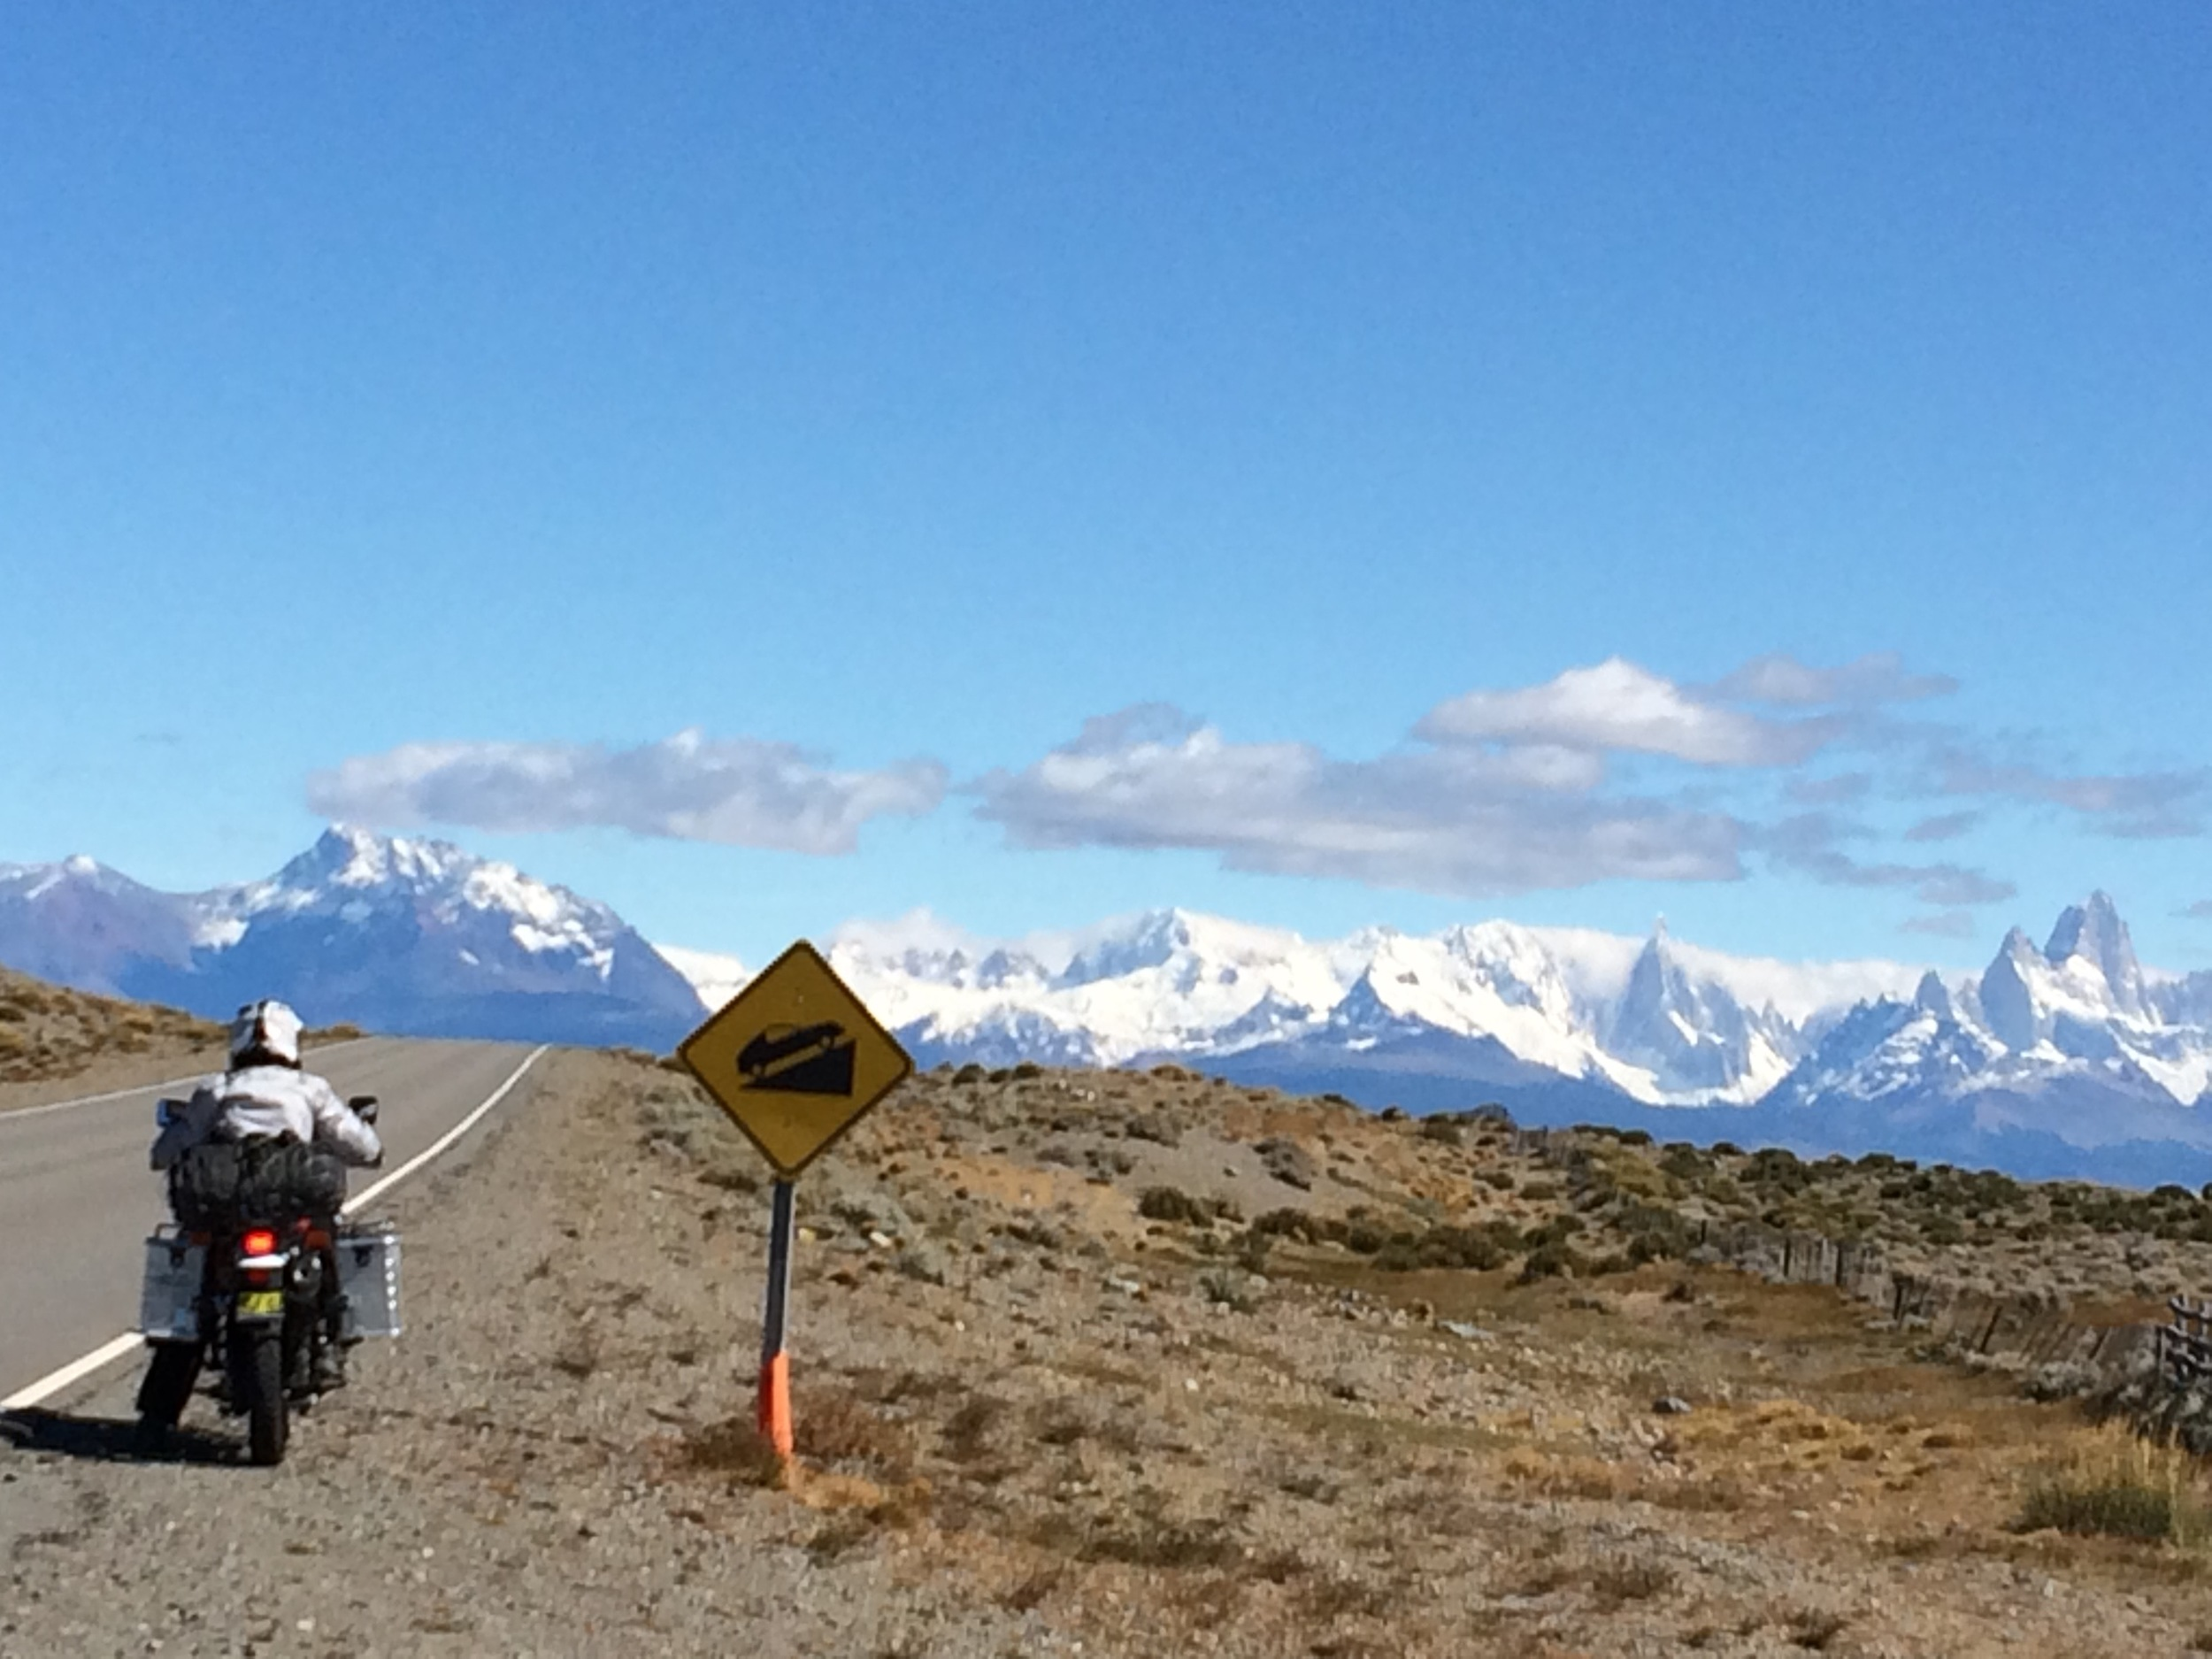 Riding towards the Andes at last! After a very long slog down the East coast and rounding Ushuaia.